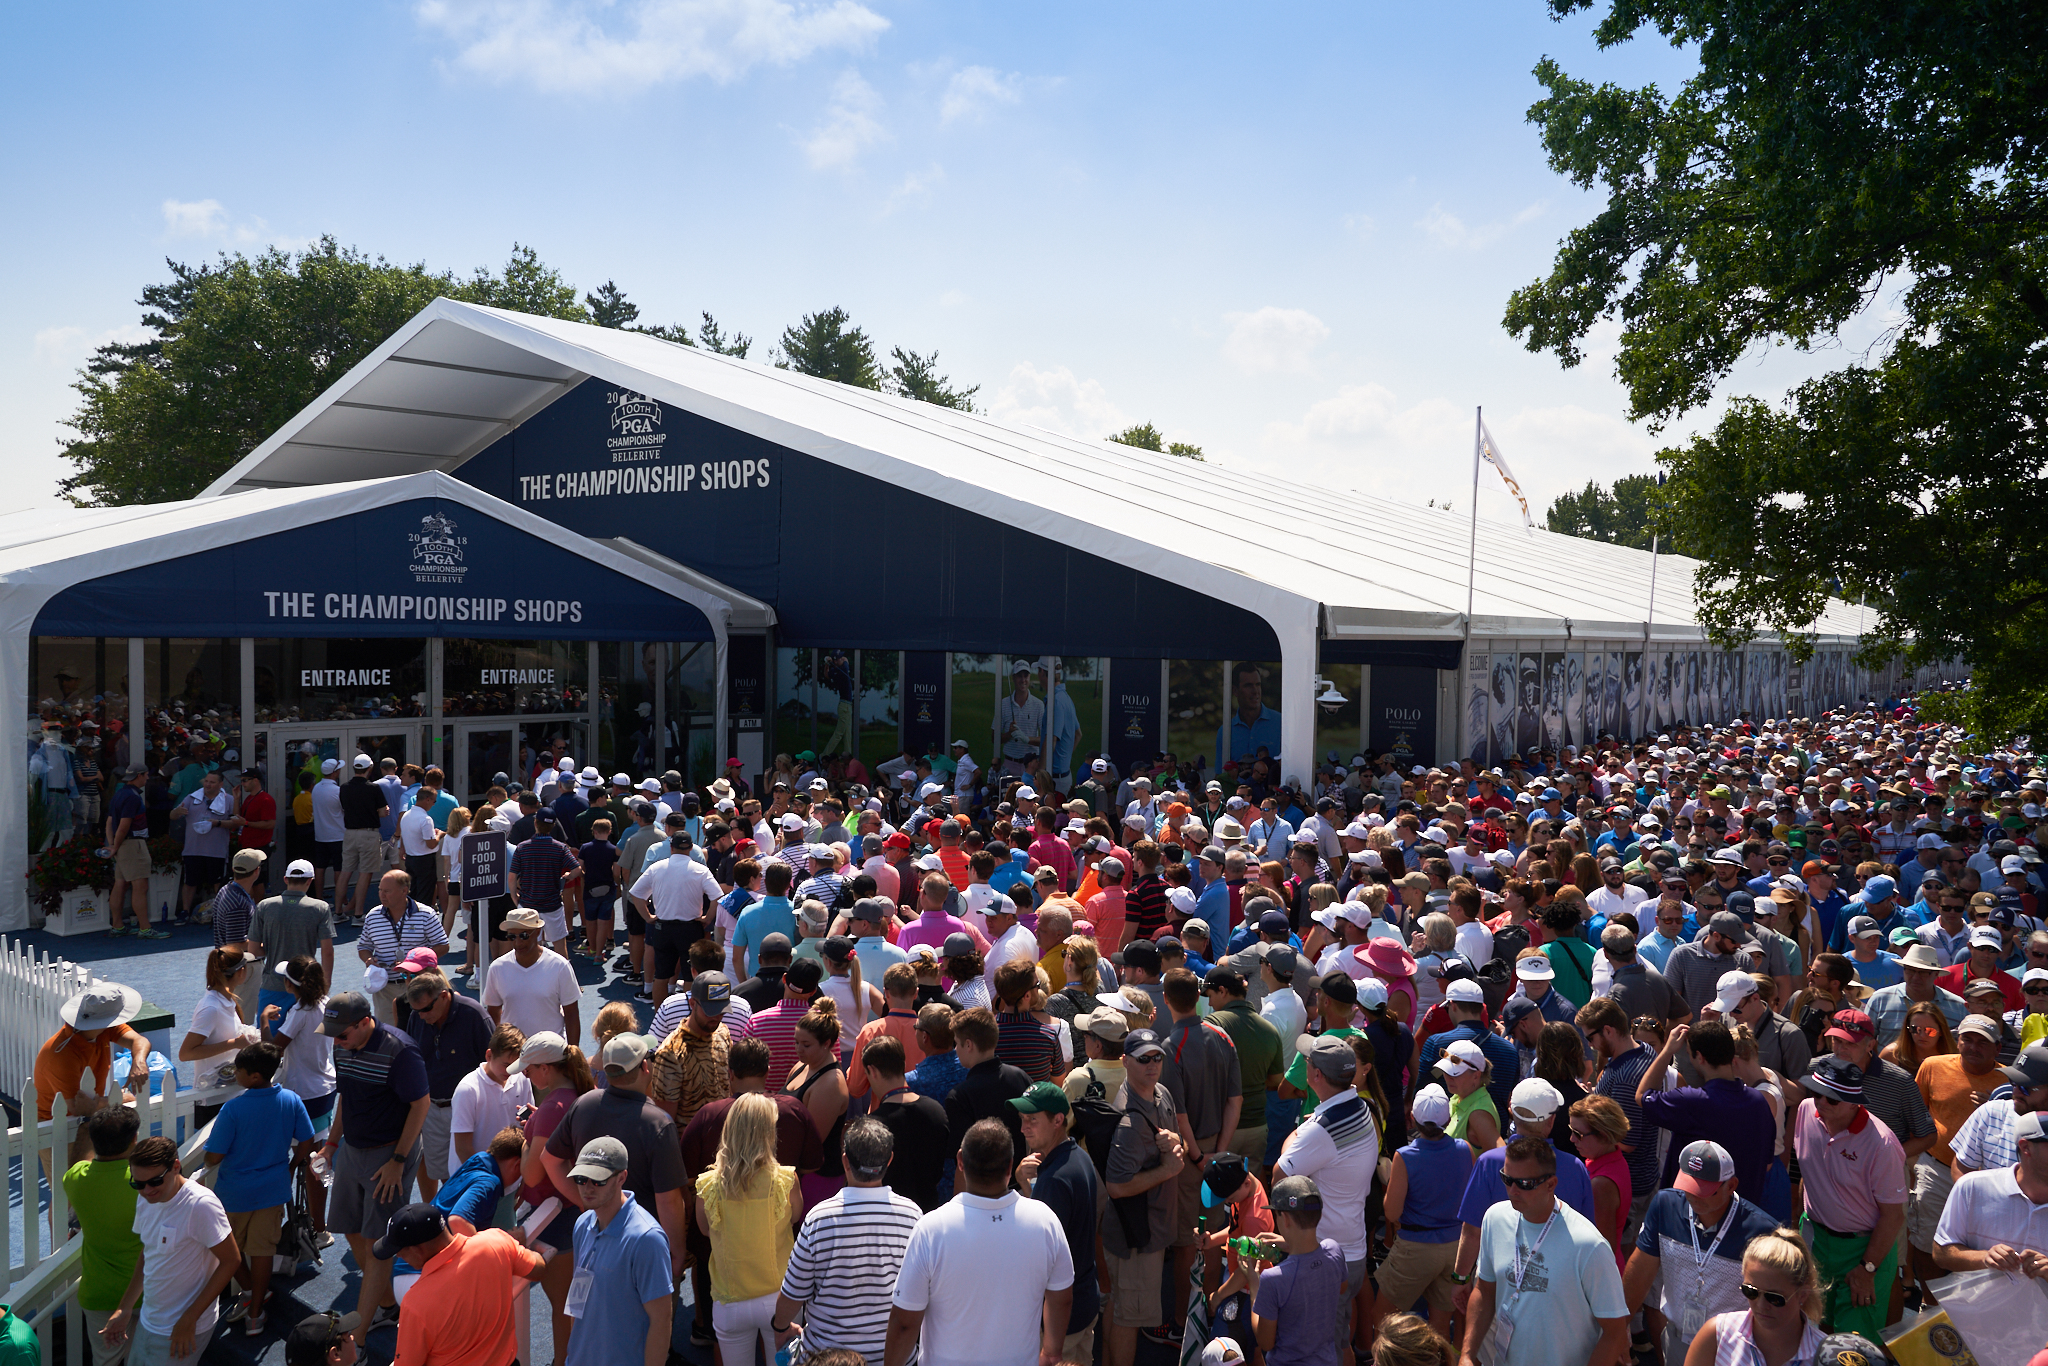 Fans crowd around the merchandise pavilion during the 2018 PGA Championship at Bellerive CC in St. Louis.  Sony A7rIII, Leica 21mm f2.8 Elmarit-M.